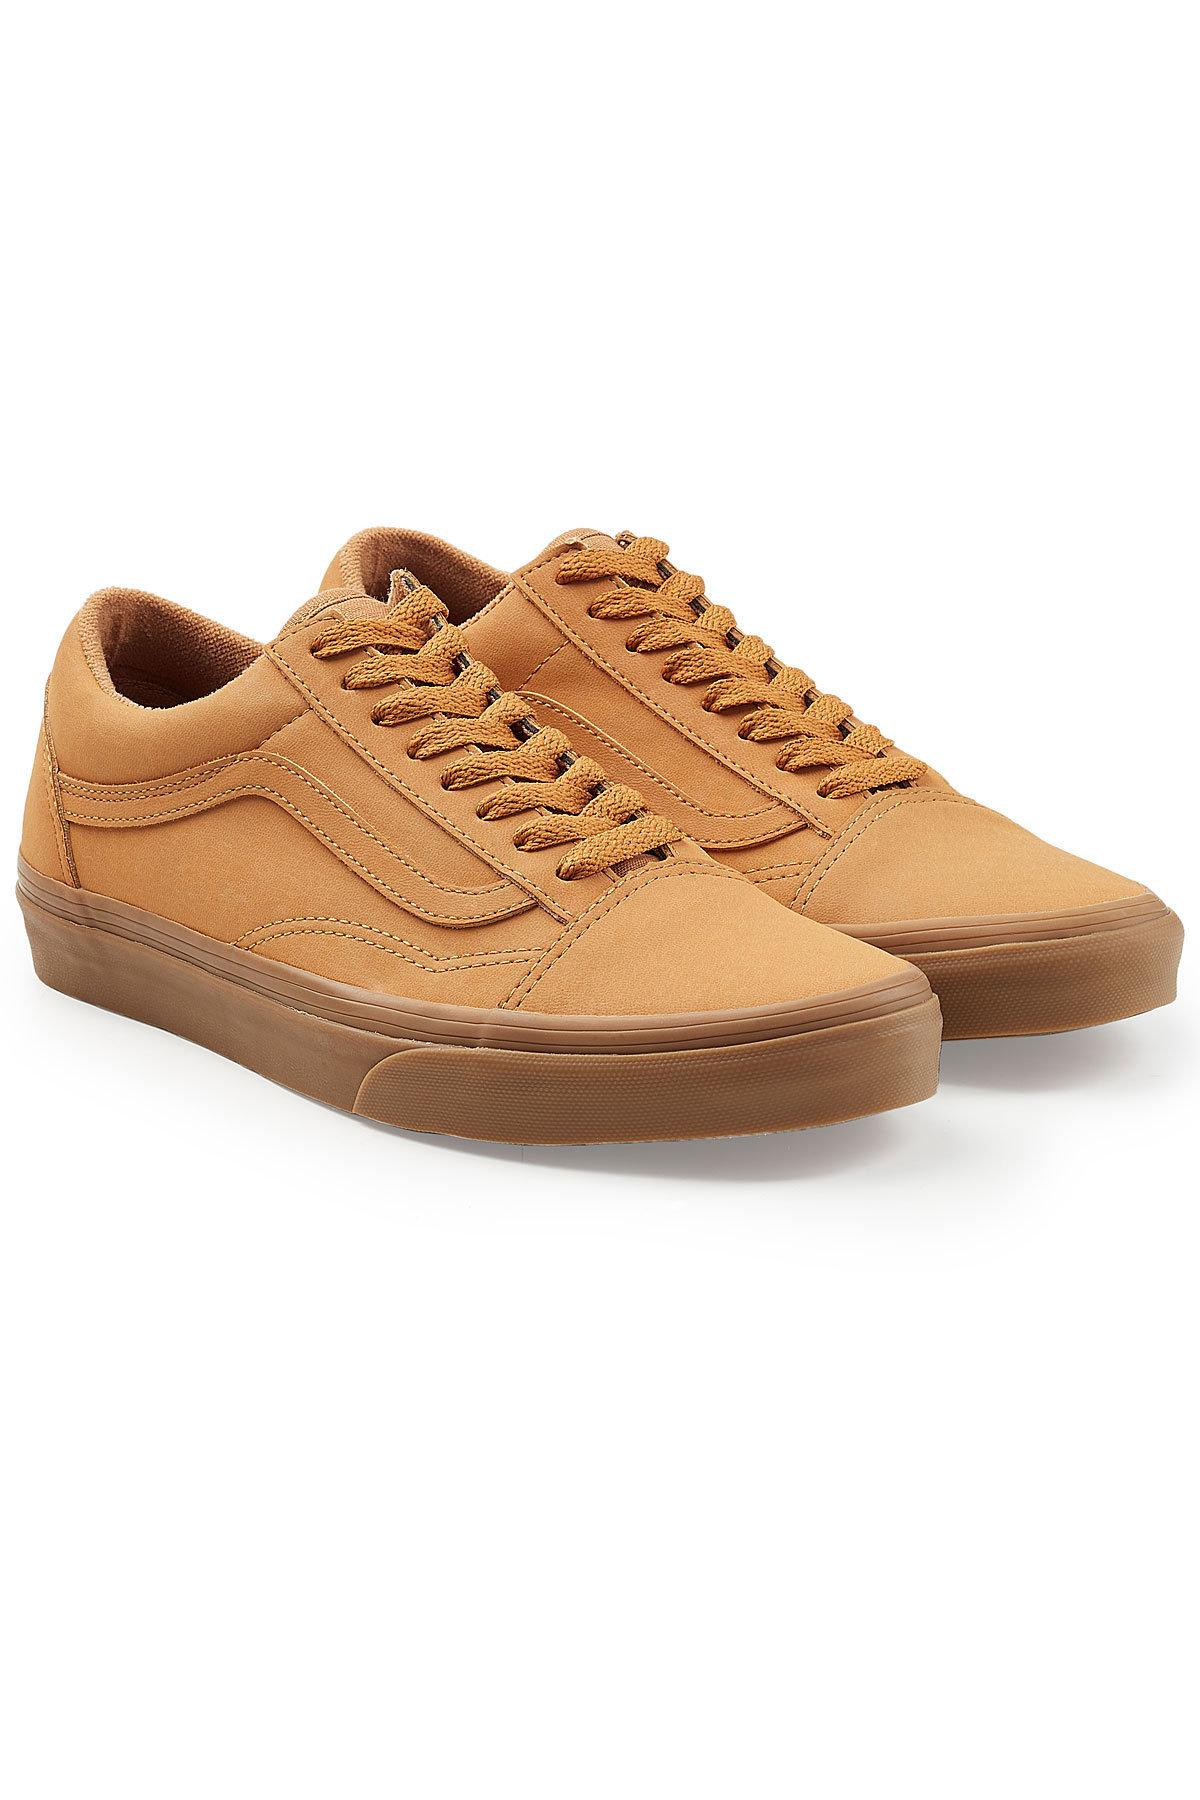 Old Skool Leather Sneakers In Camel